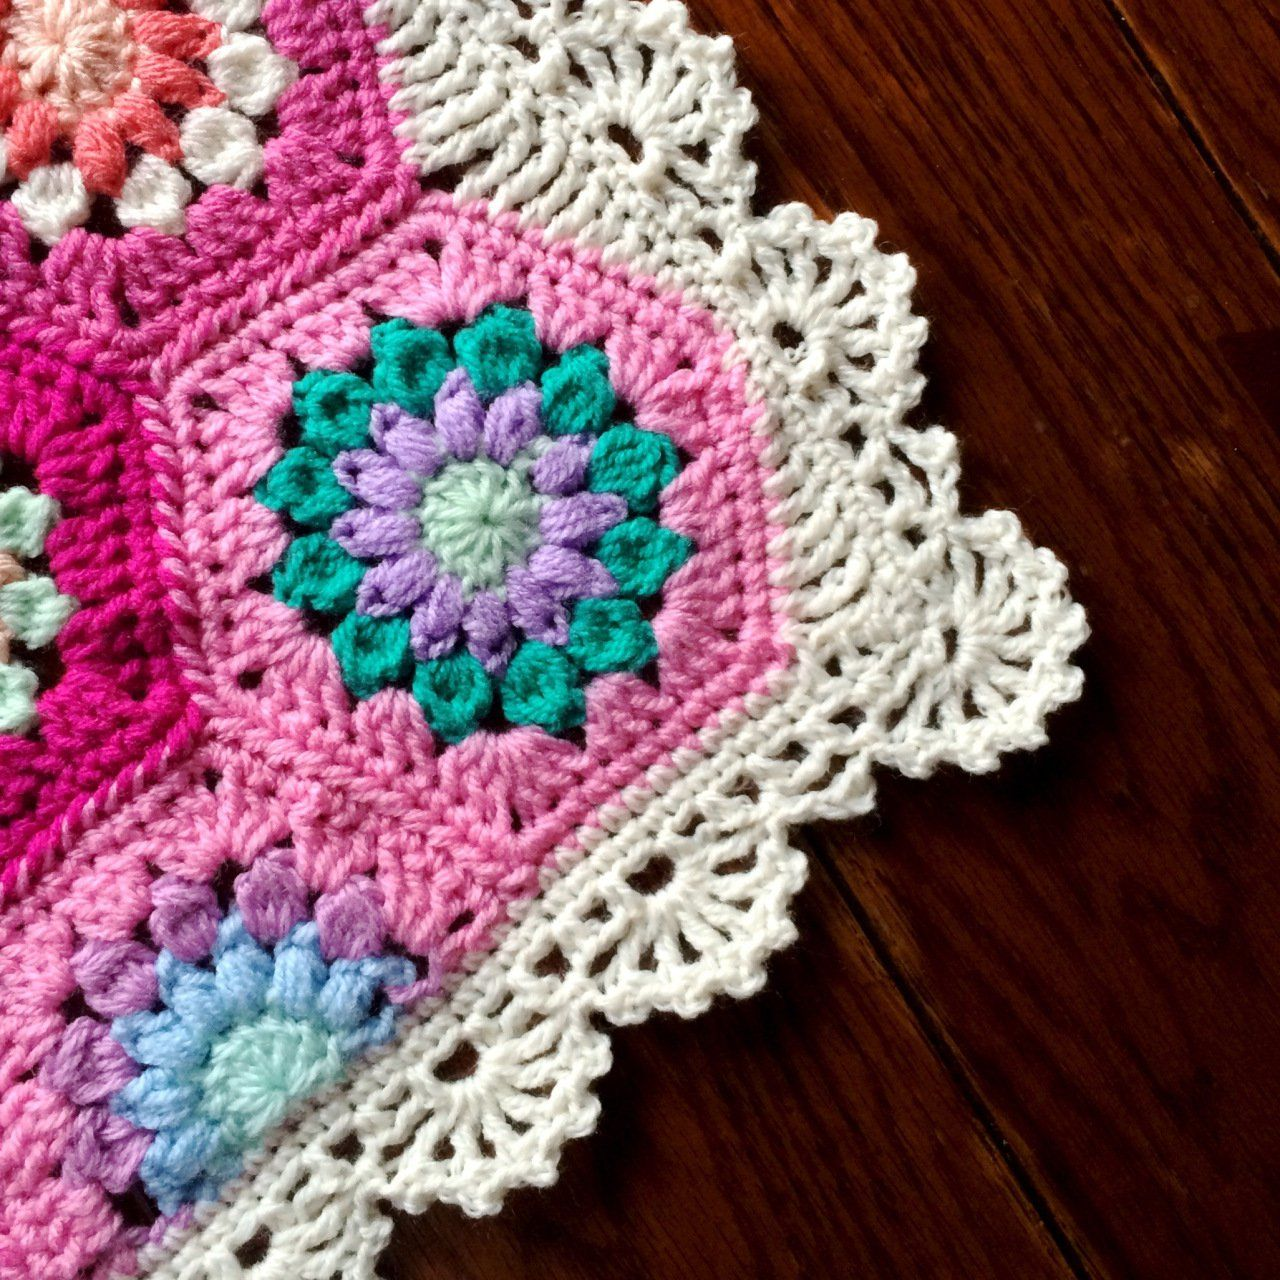 20 + Crochet Free Edging Patterns You Should Know | Bordüren ...